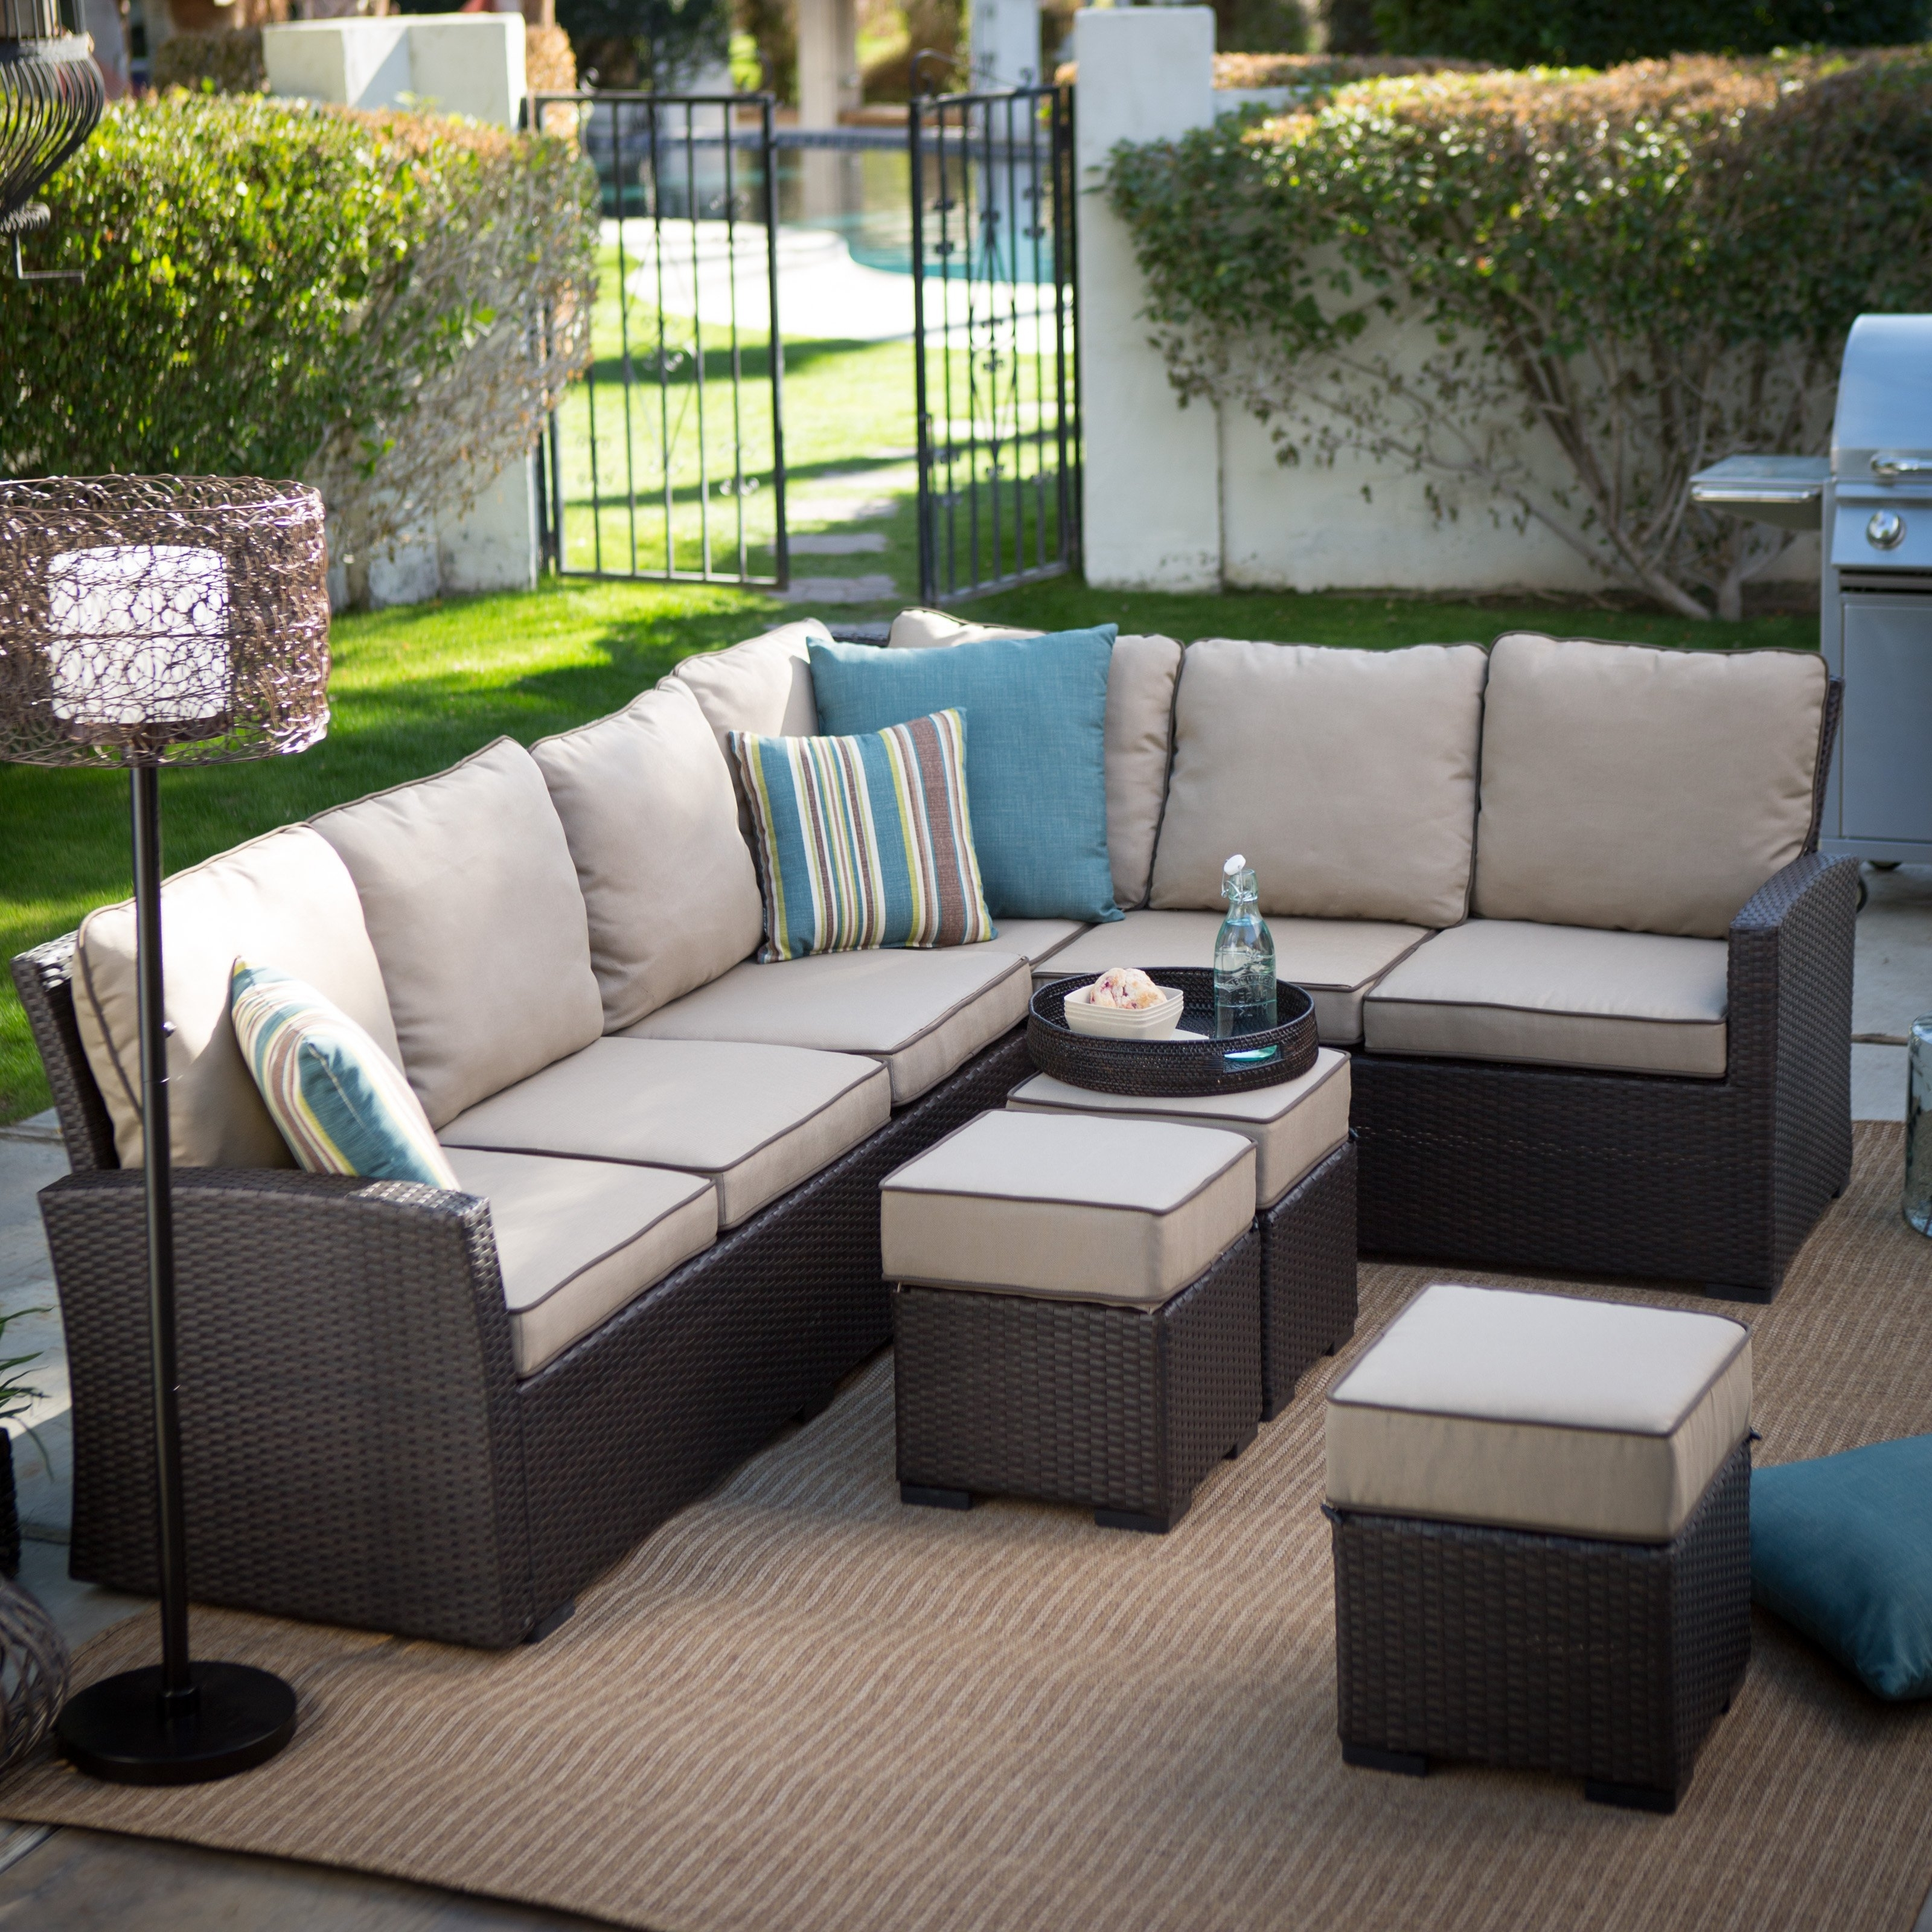 Popular Patio Sectional Conversation Sets With Regard To Belham Living Monticello All Weather Outdoor Wicker Sofa Sectional (View 13 of 15)